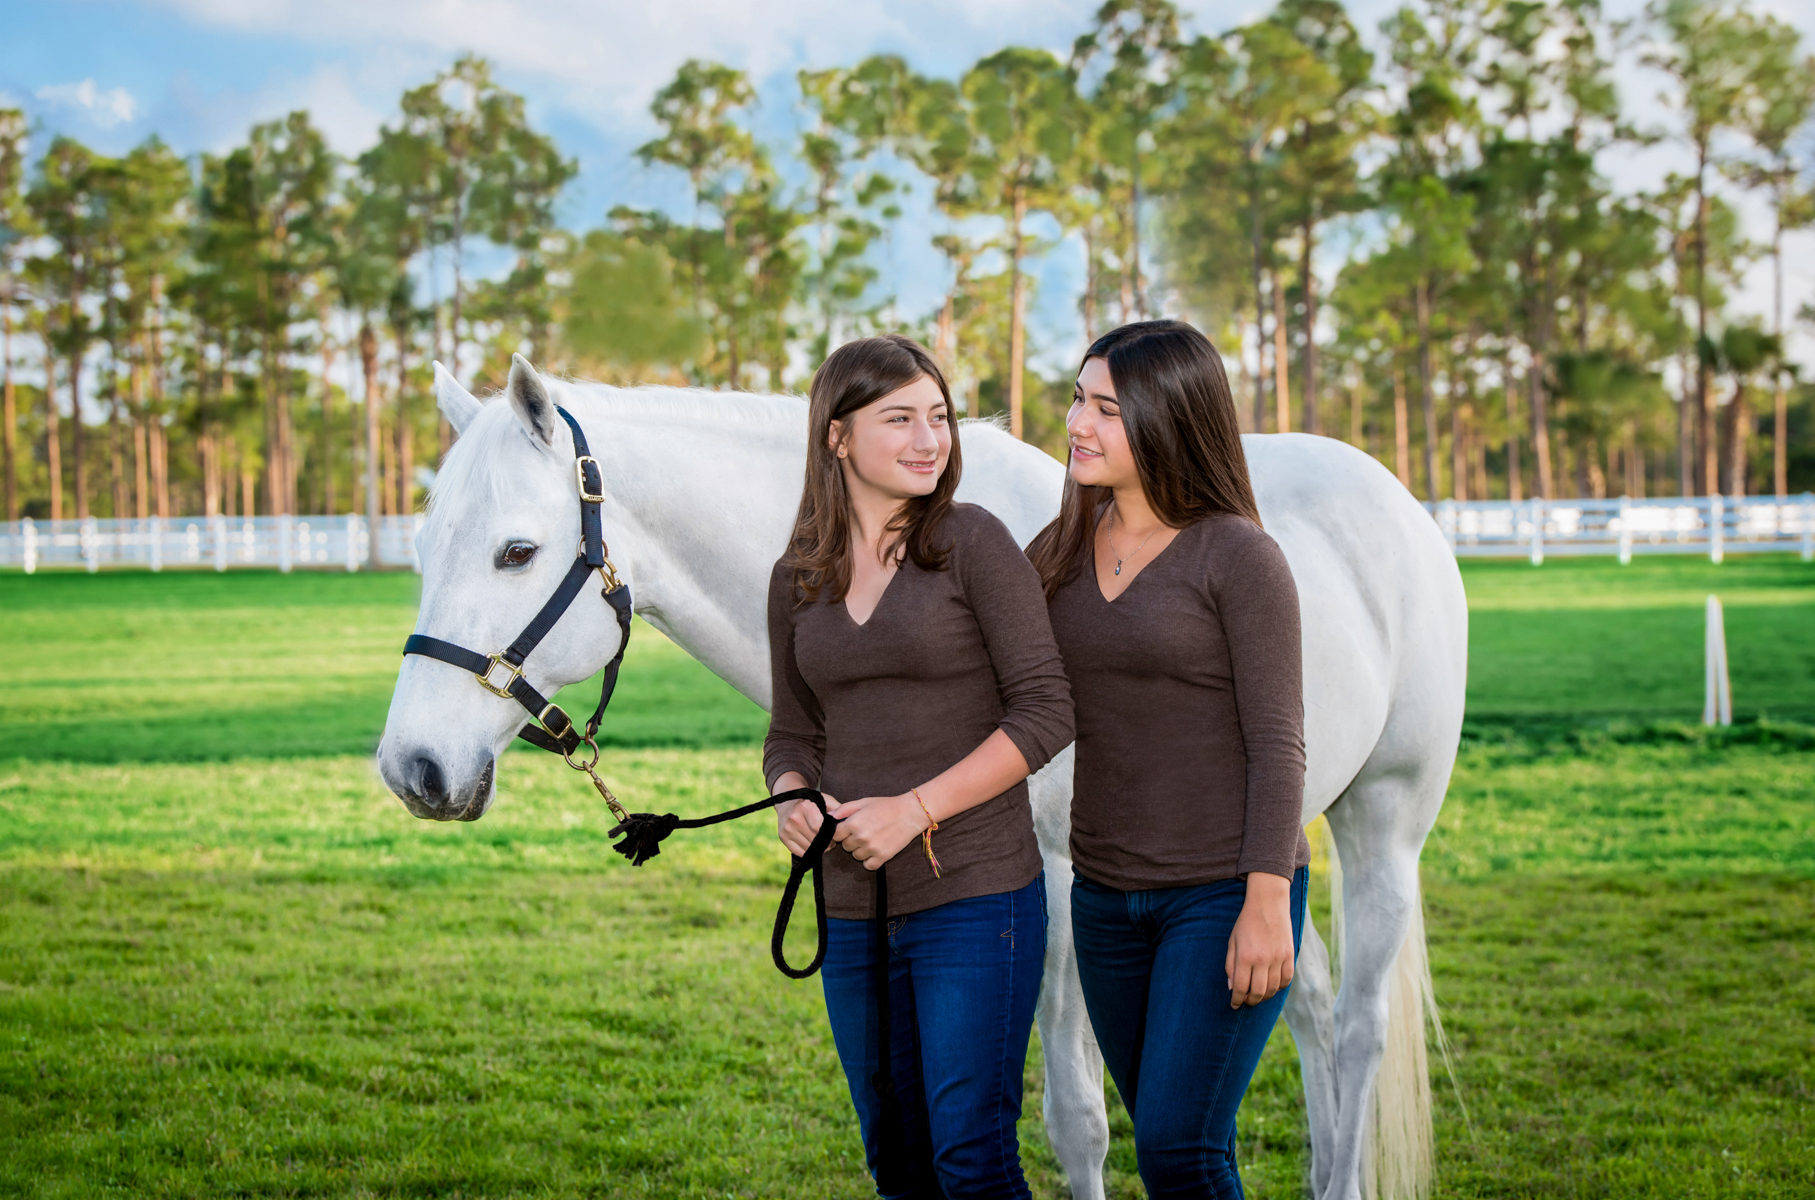 Horse photographer in Royal Palm Beach Gardens, FL